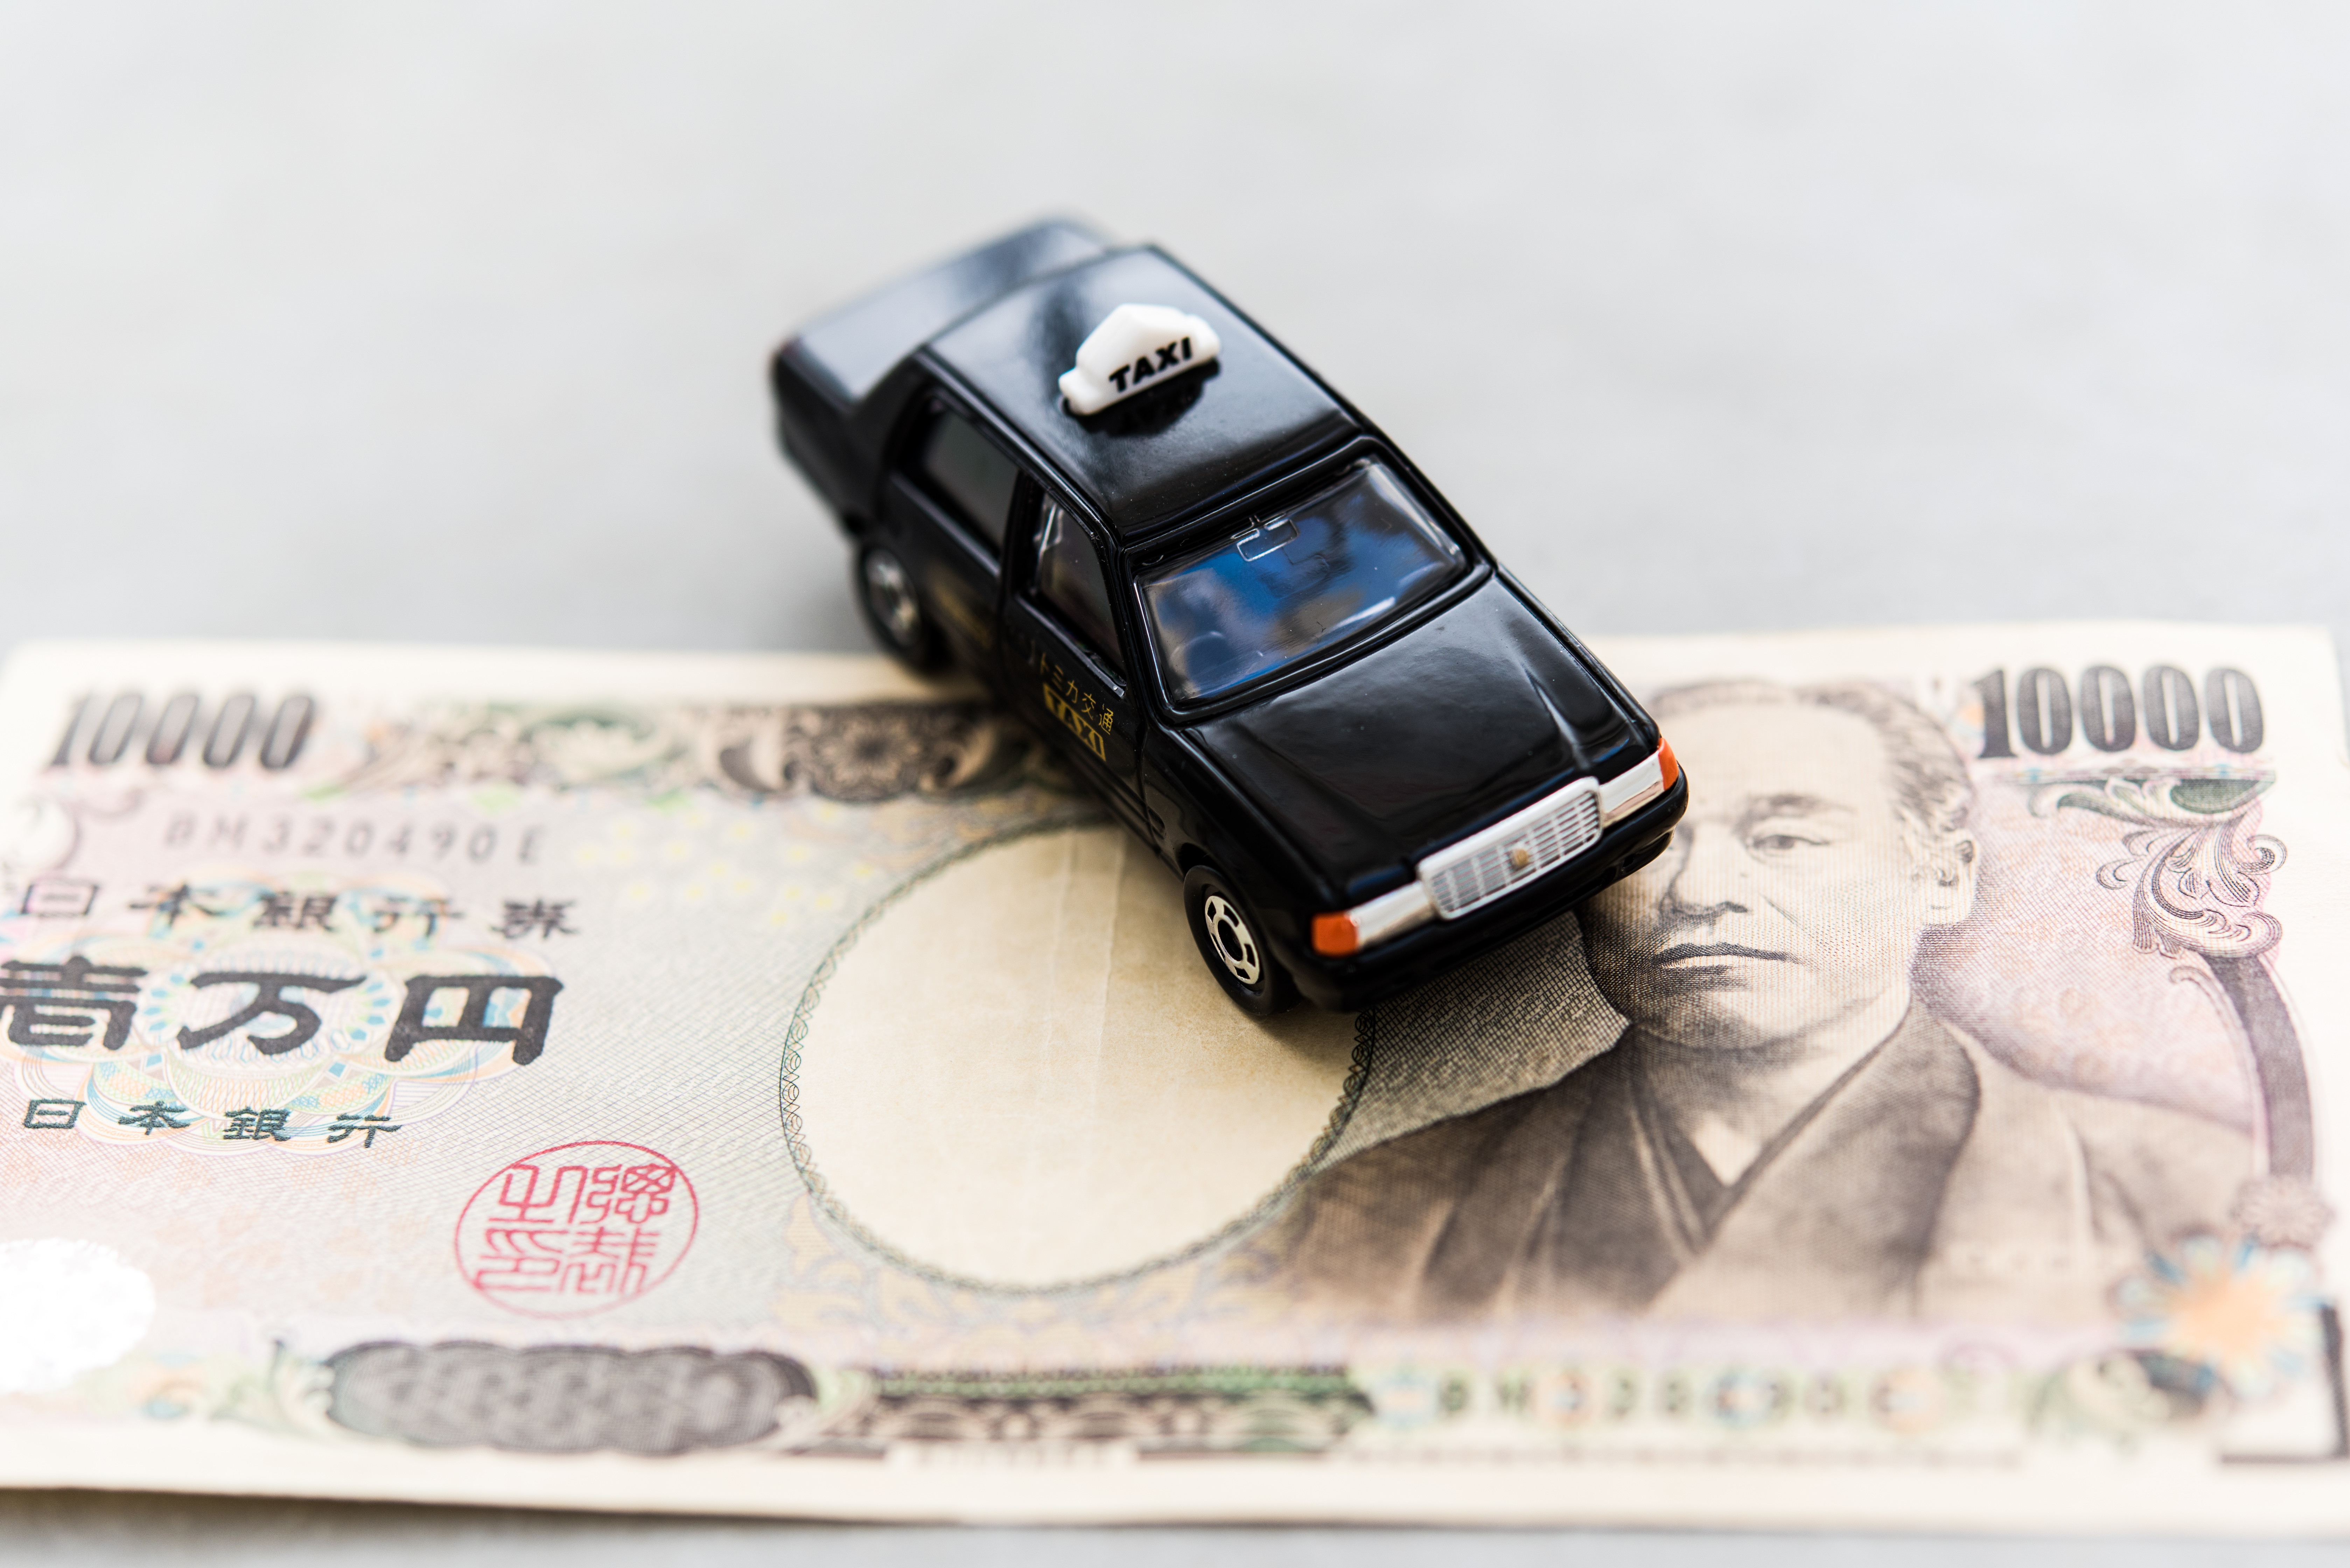 A picture of a toy taxi on top of a Japanese yen note